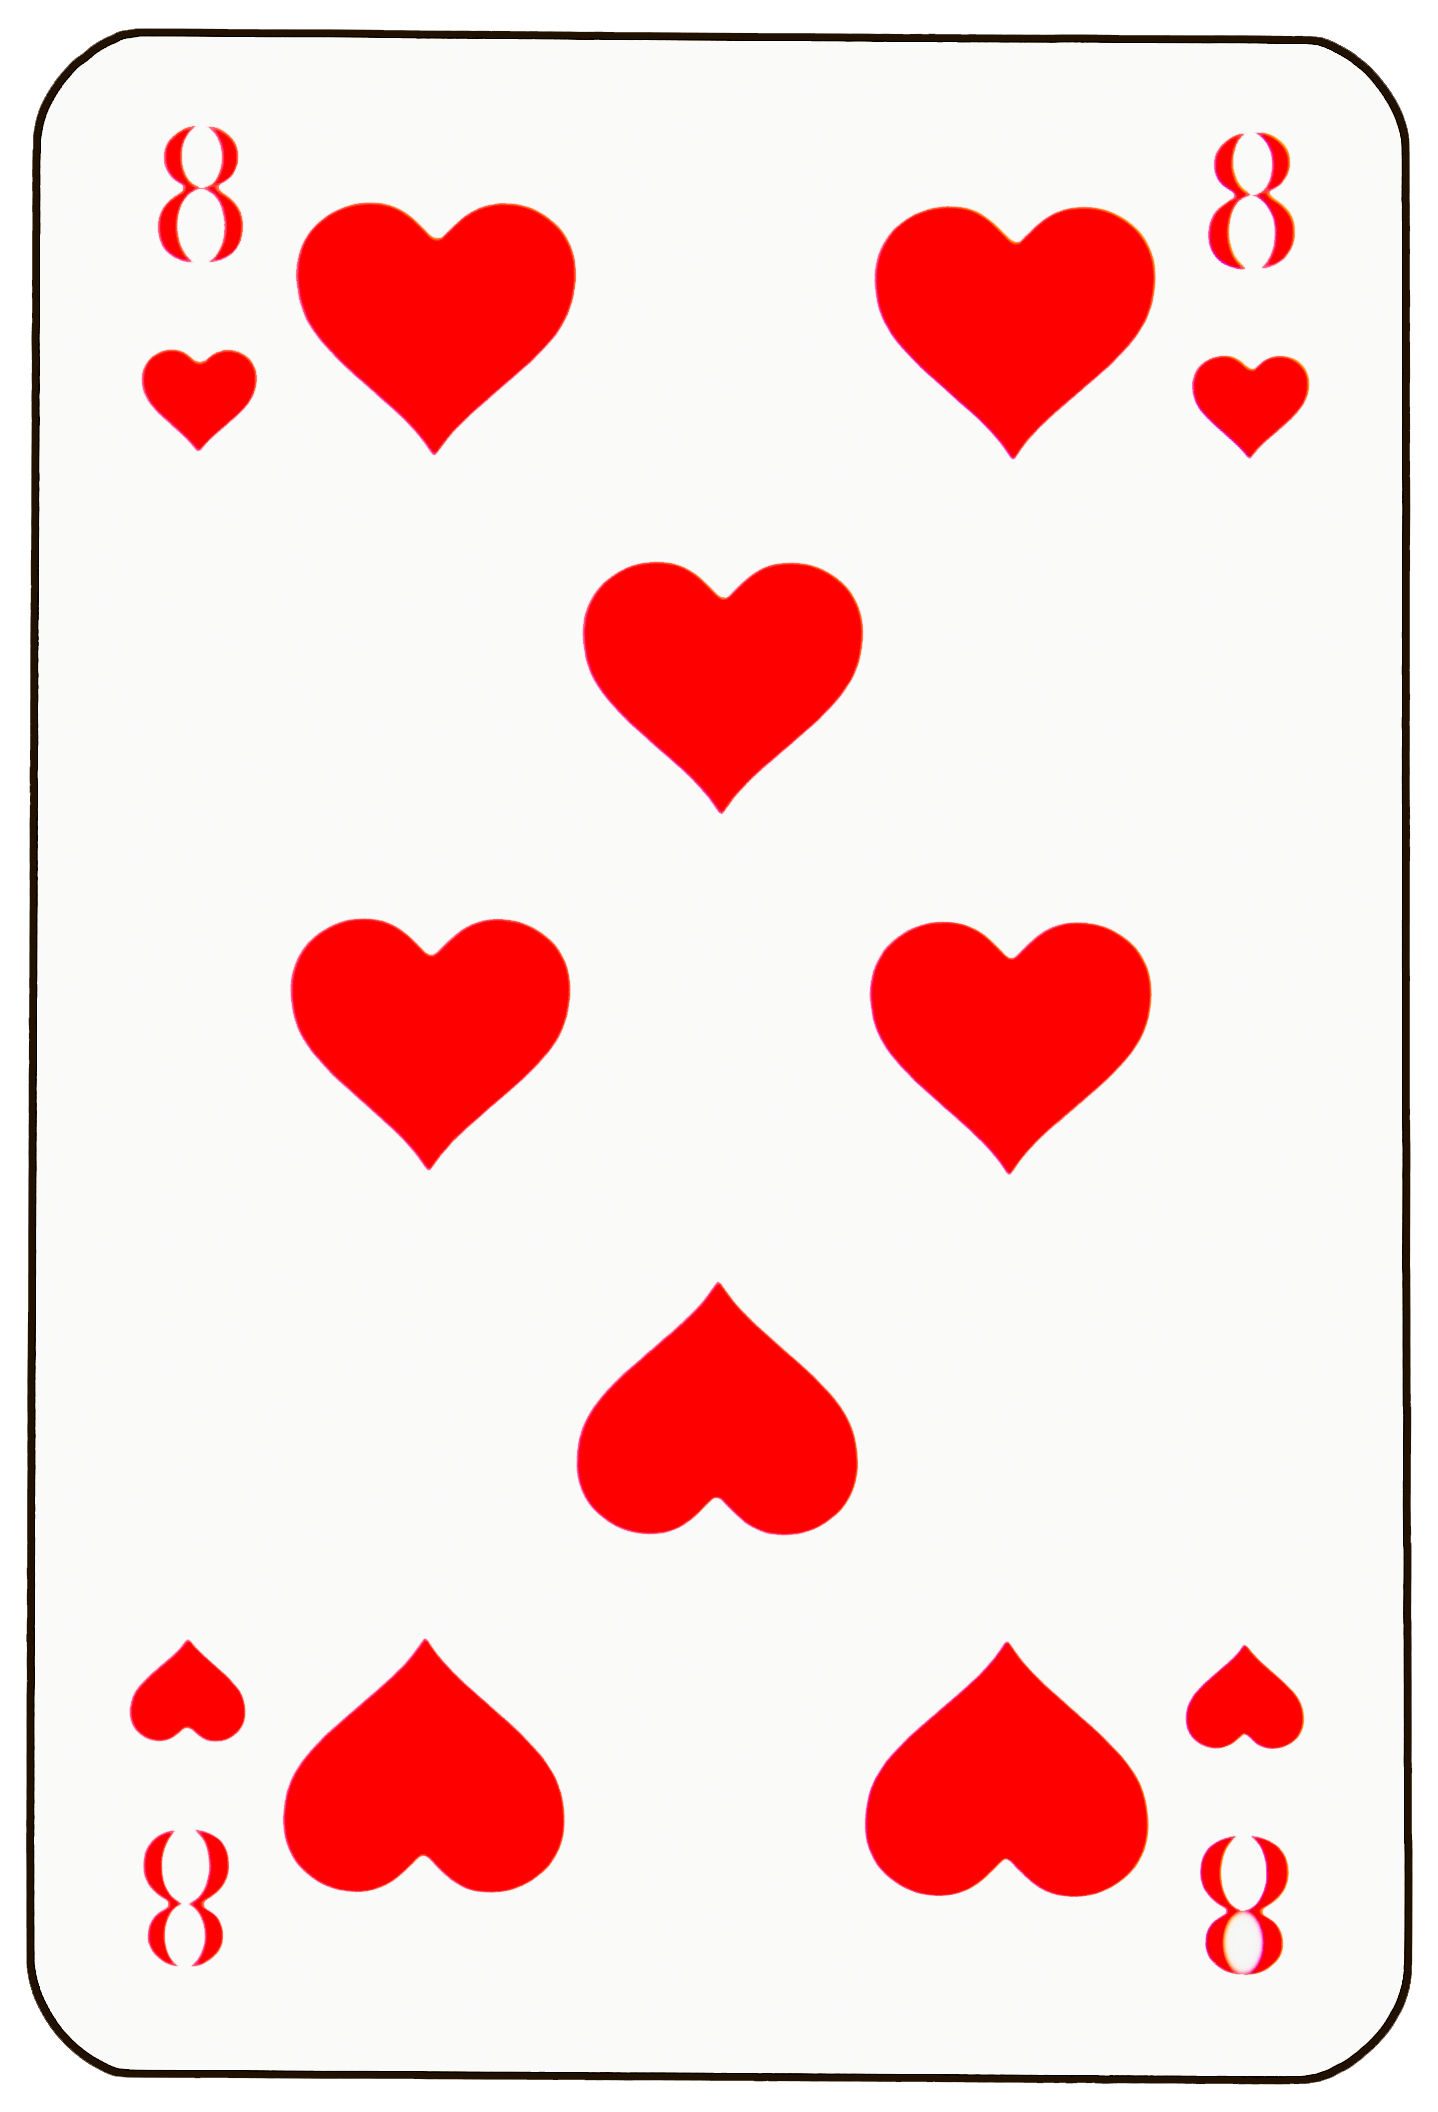 The 8 of Hearts